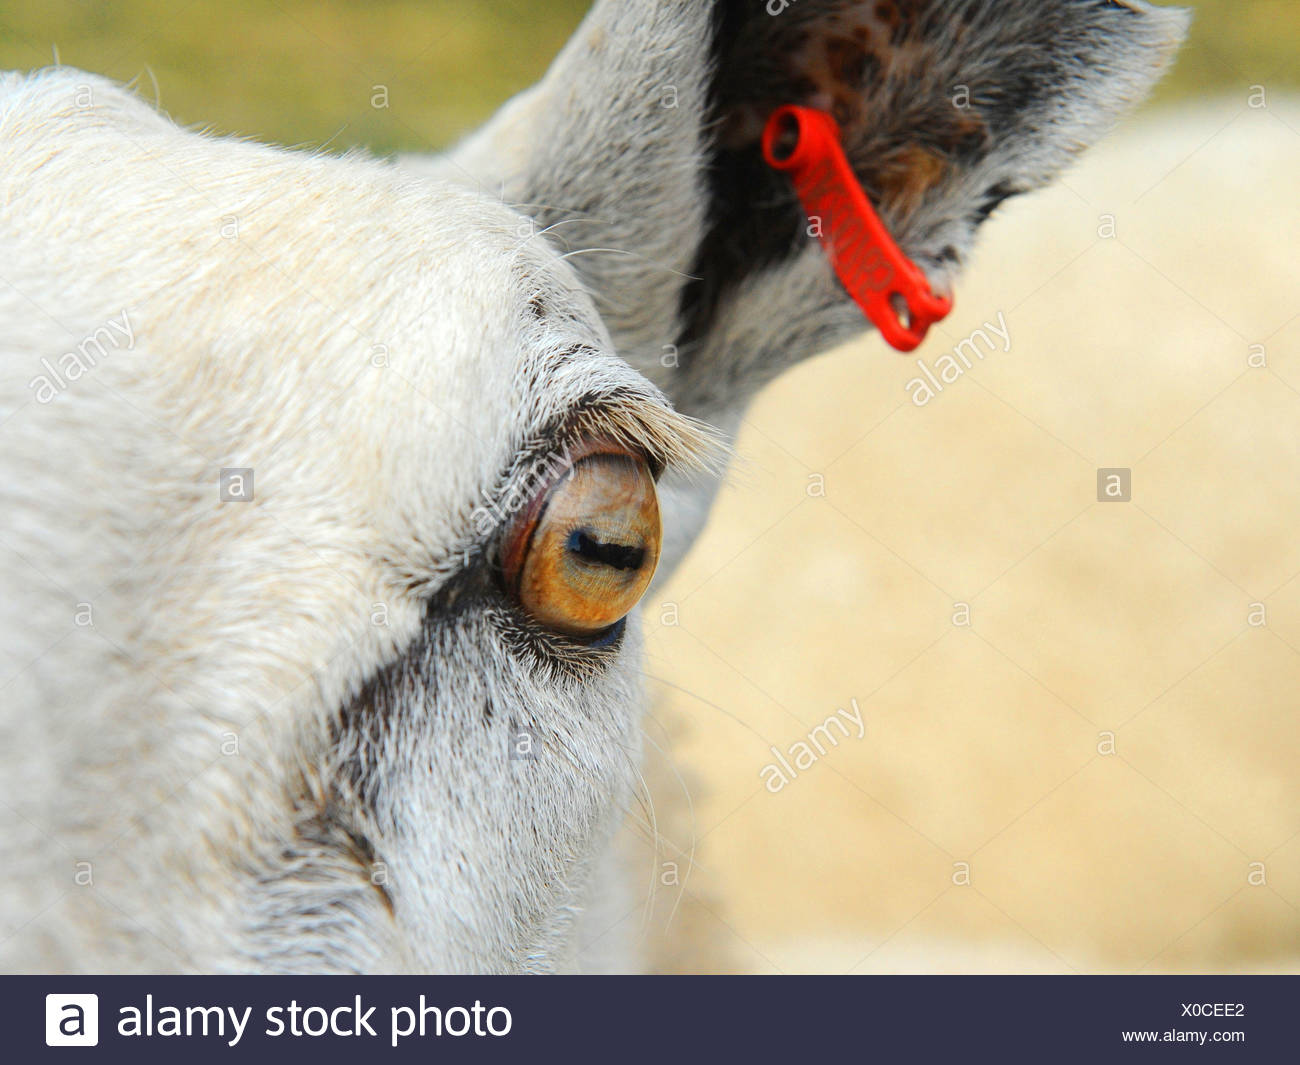 A close-up of a sheep's eye - Stock Image